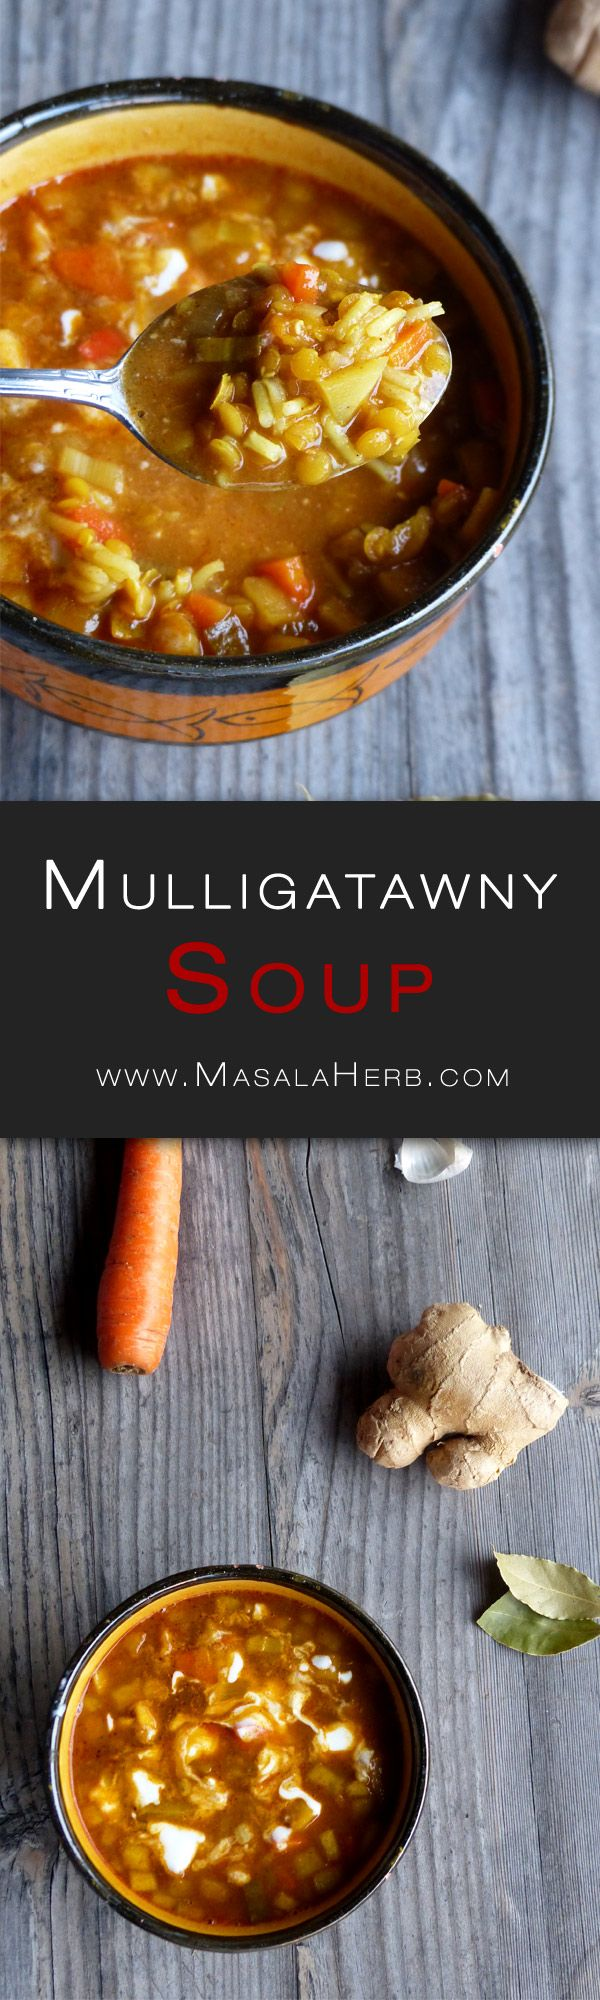 Mulligatawny Soup - How to make Mulligatawny Soup www.MasalaHerb.com